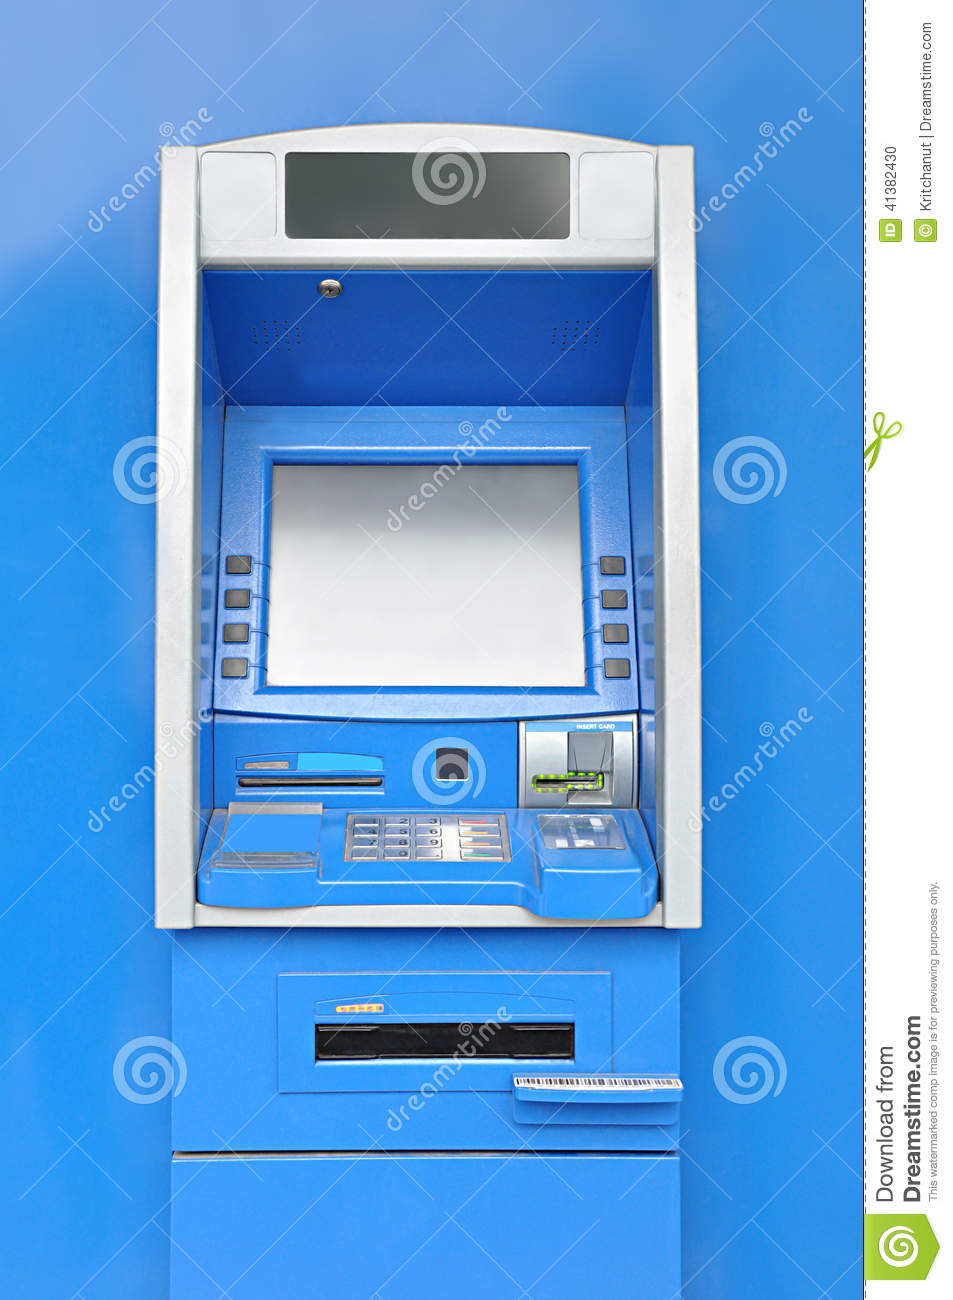 thesis about automated teller machine An automatic teller machine or atm allows a bank customer to conduct their banking transactions from almost every other atm machine in the world as is often the case with inventions, many inventors contribute to the history of an invention, as is the case with the atm keep reading to learn about.